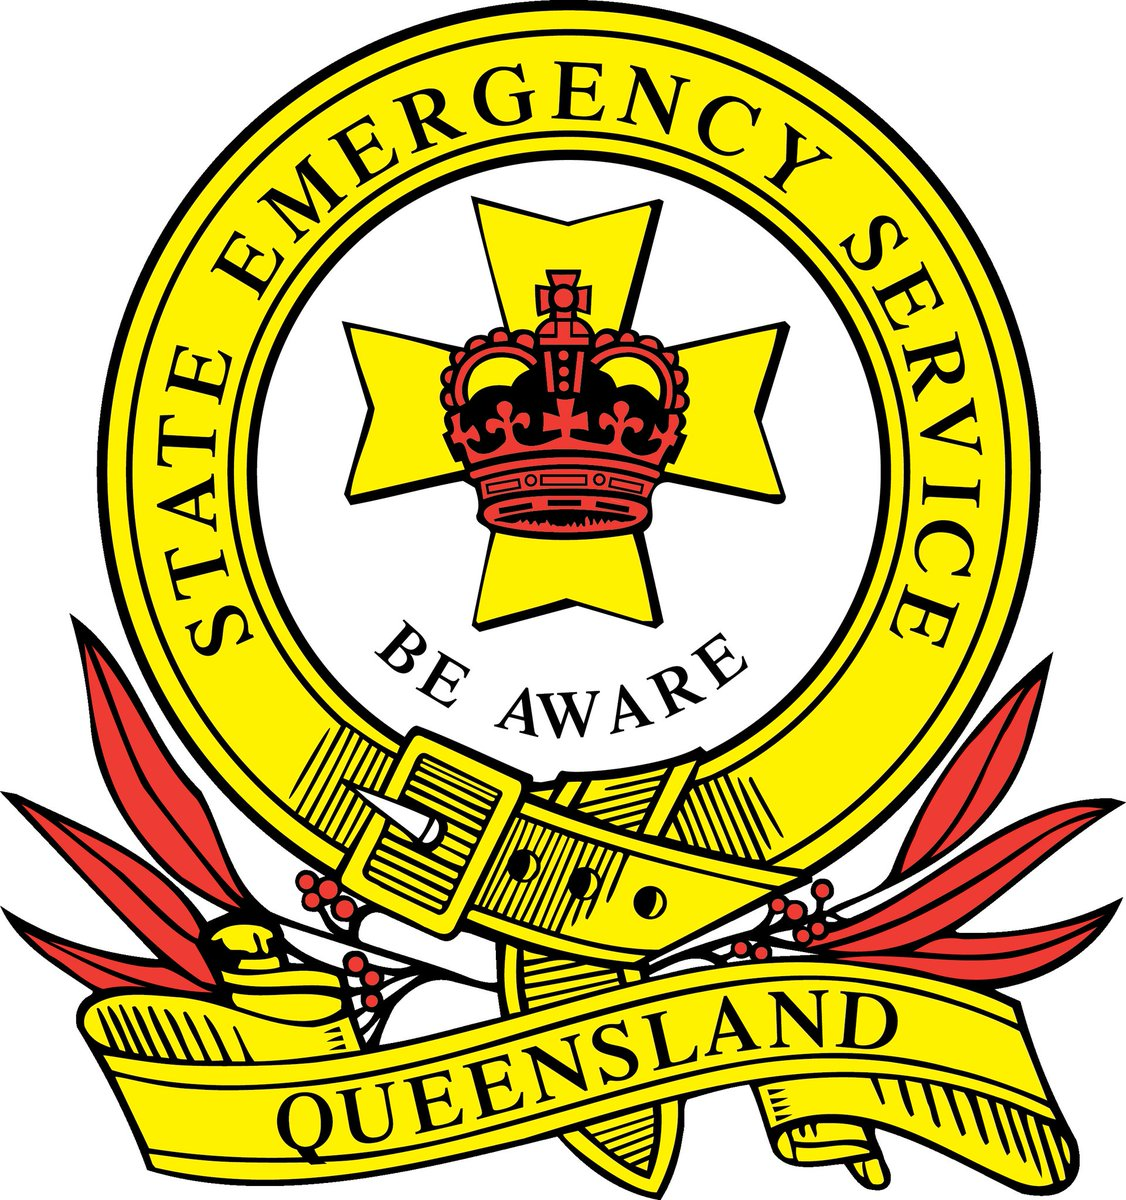 🦺 Well done teams, outstanding job!  Thank you for all the dedication and hard work for the community.  @AnnastaciaMP @GetReadyQld  #qldses #qldsesva #qldfes #sesvolunteers #volunteers #getready #ifitsfloodedforgetit